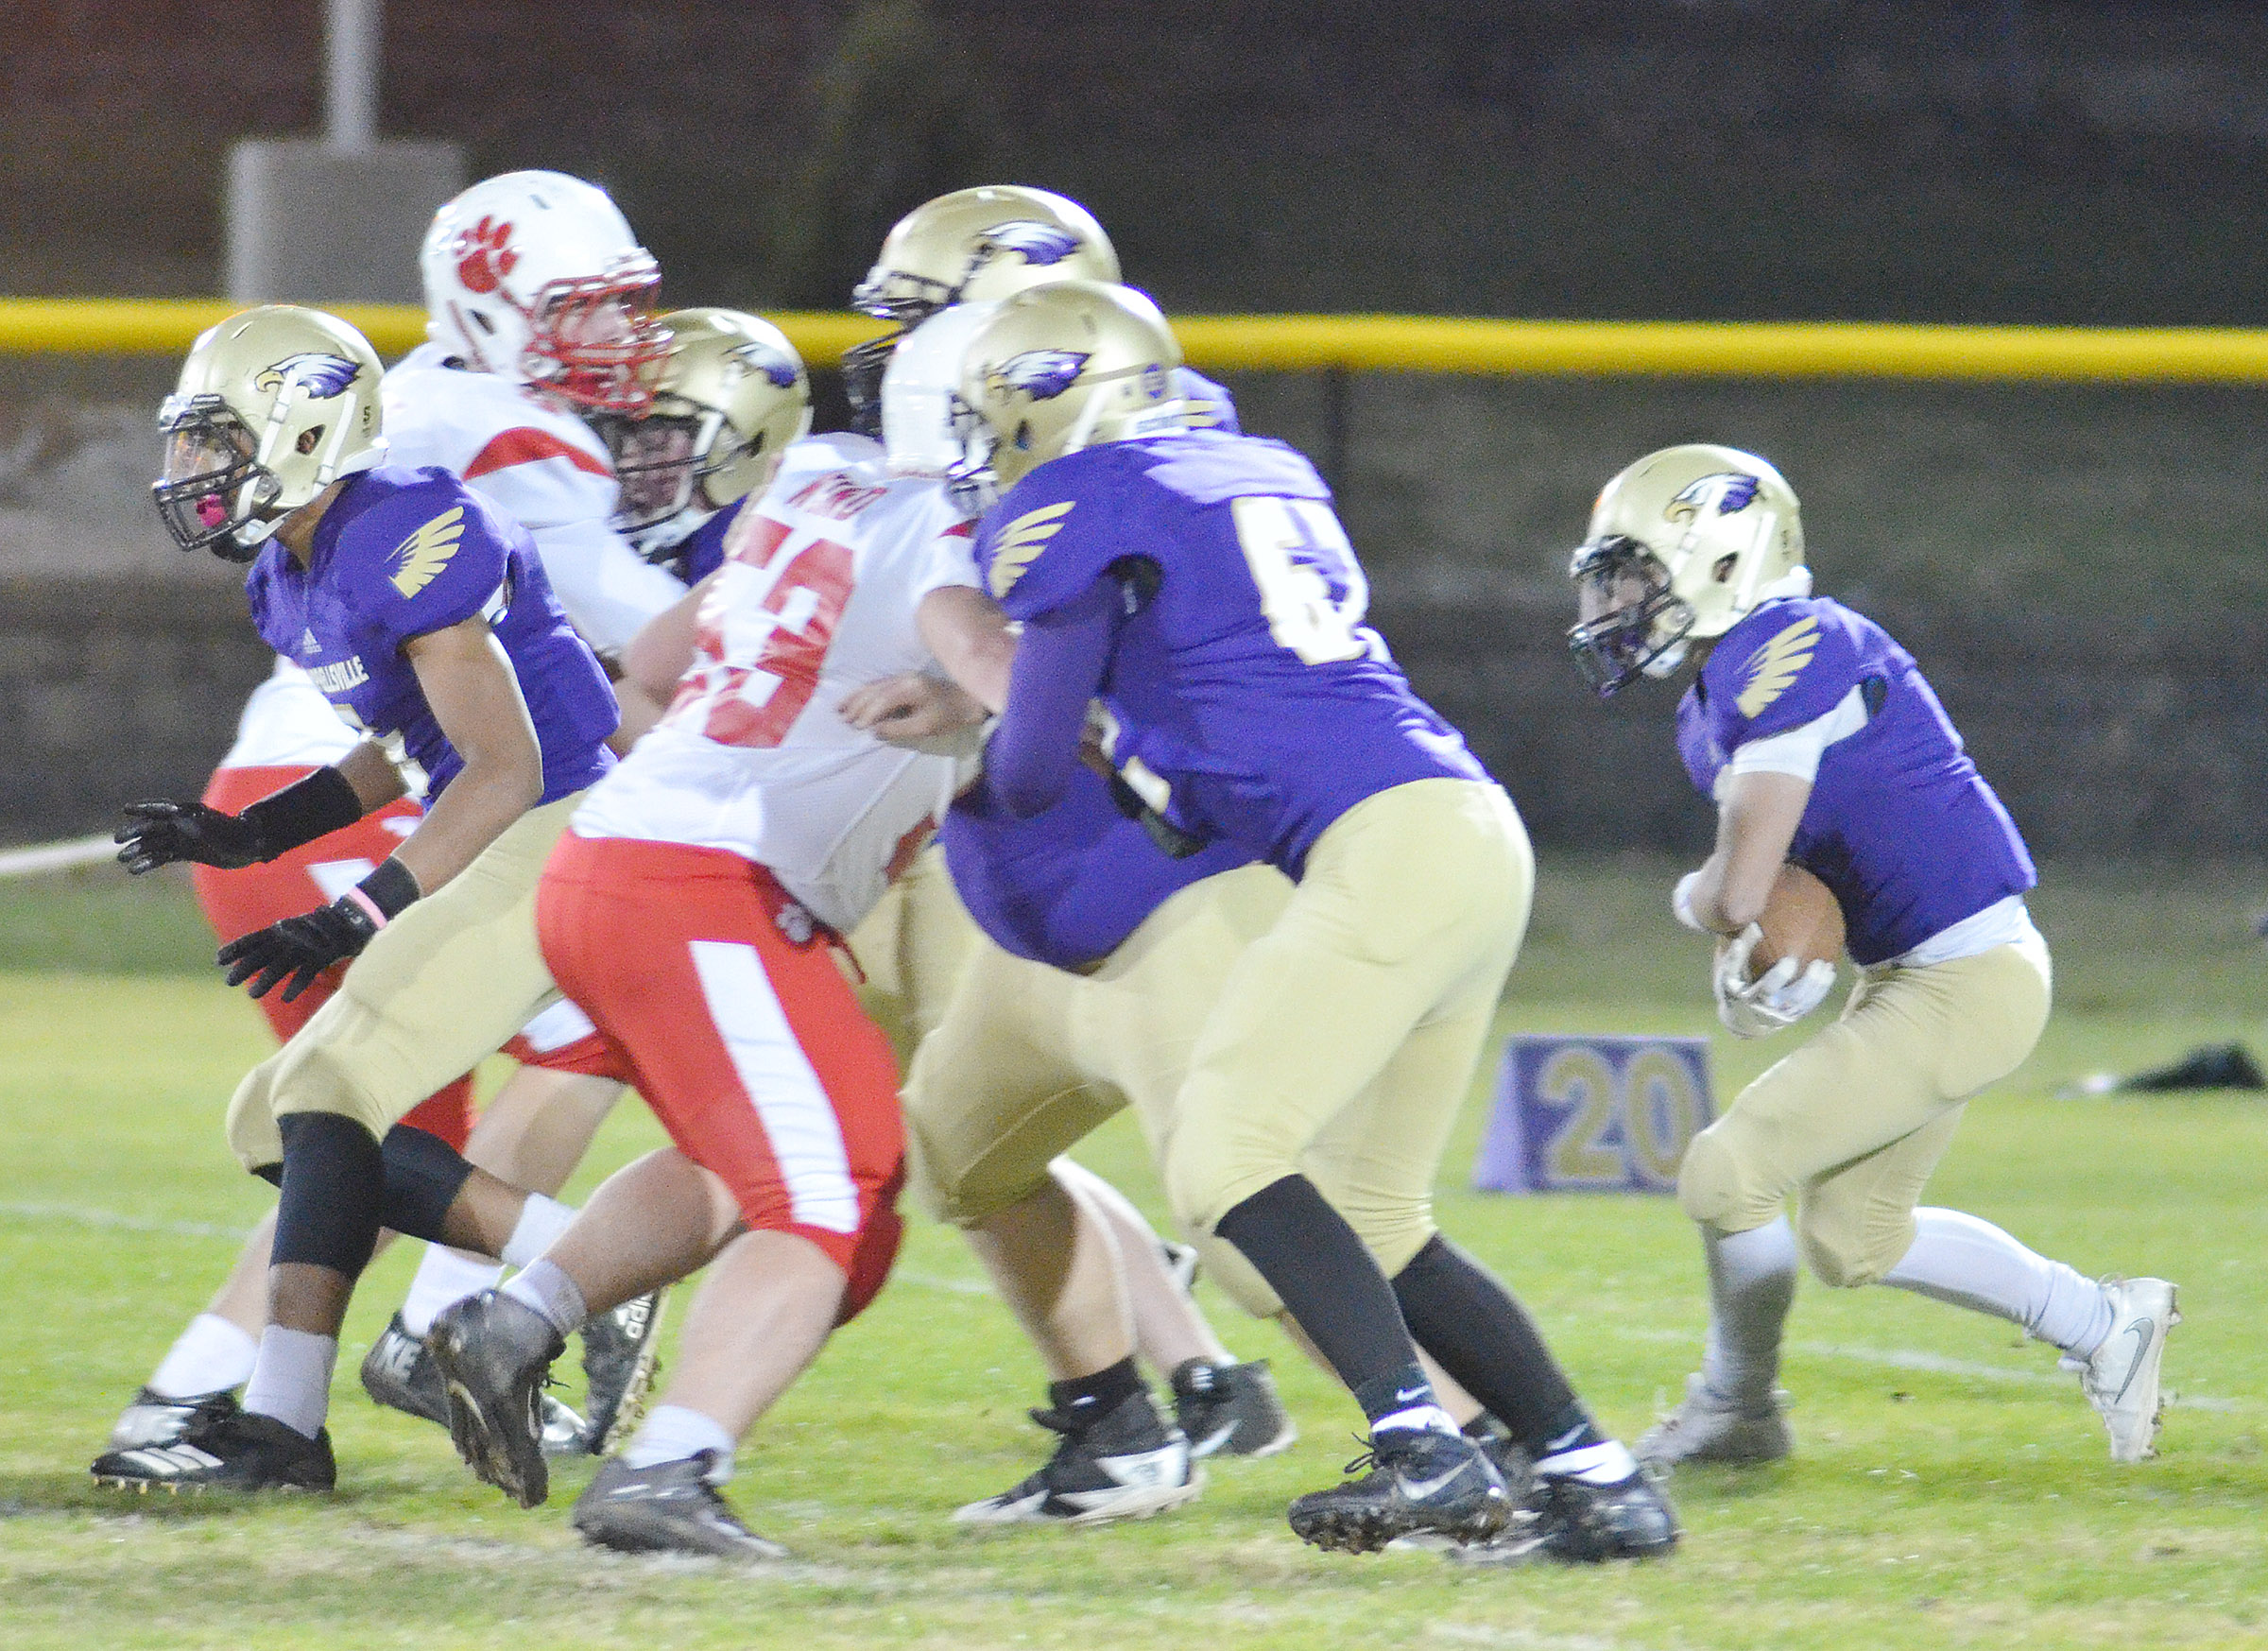 CHS senior Austin Carter runs the ball as his teammates block for him.